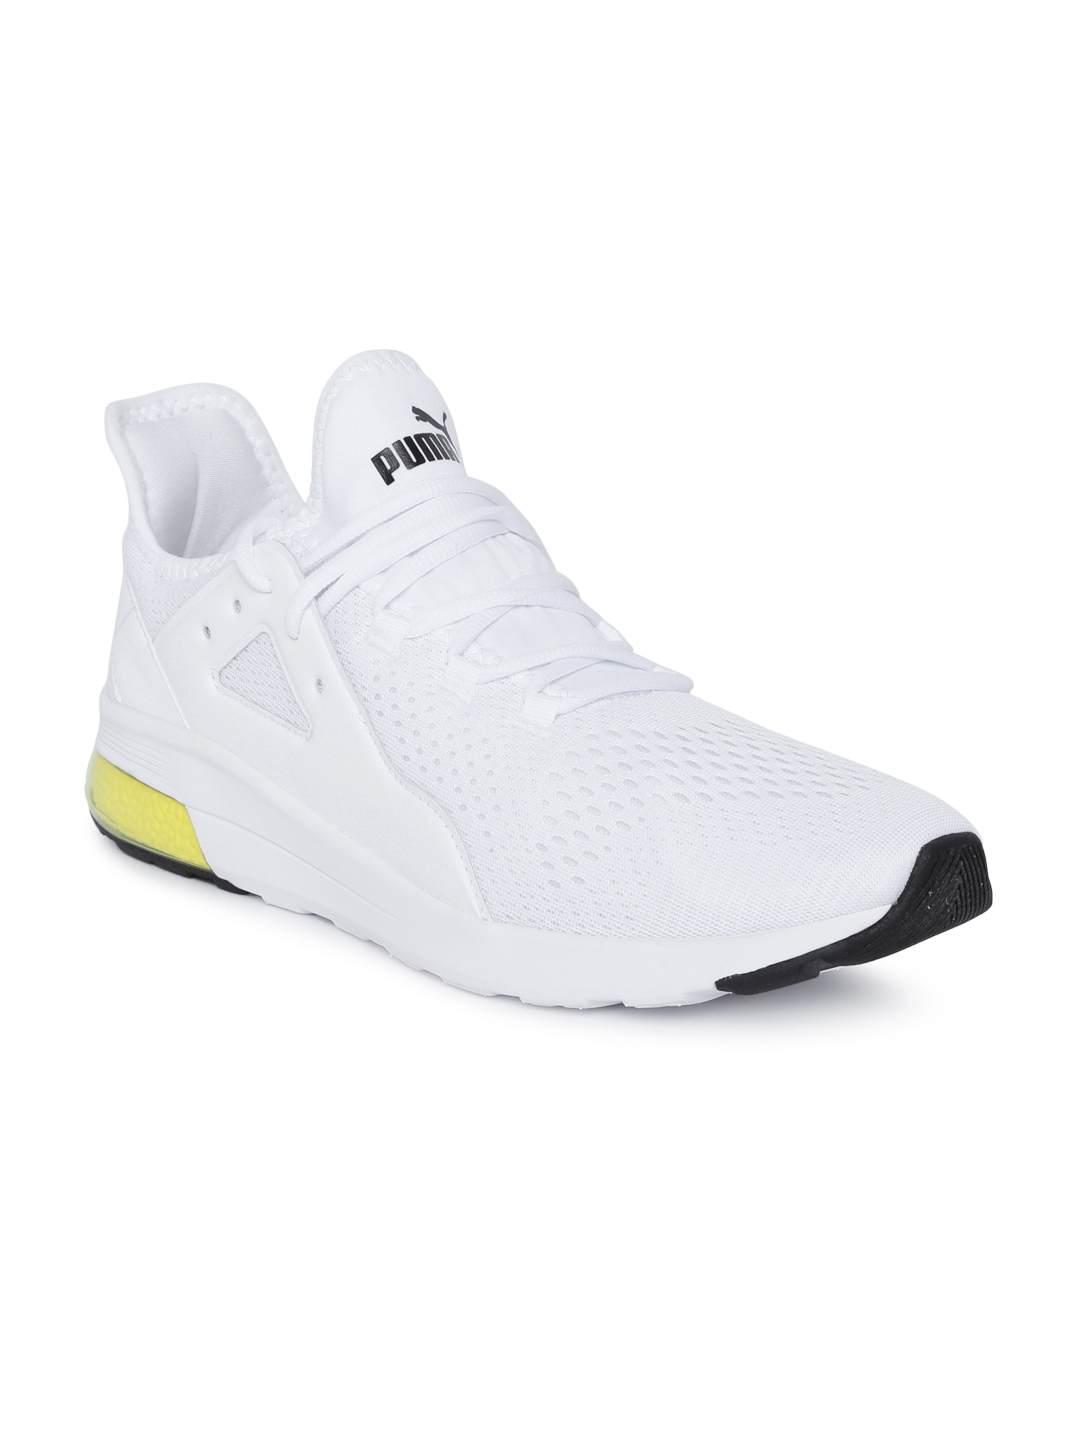 84d078caadedbd Buy Puma Men White Electron Street Eng Training Shoes - Sports Shoes ...